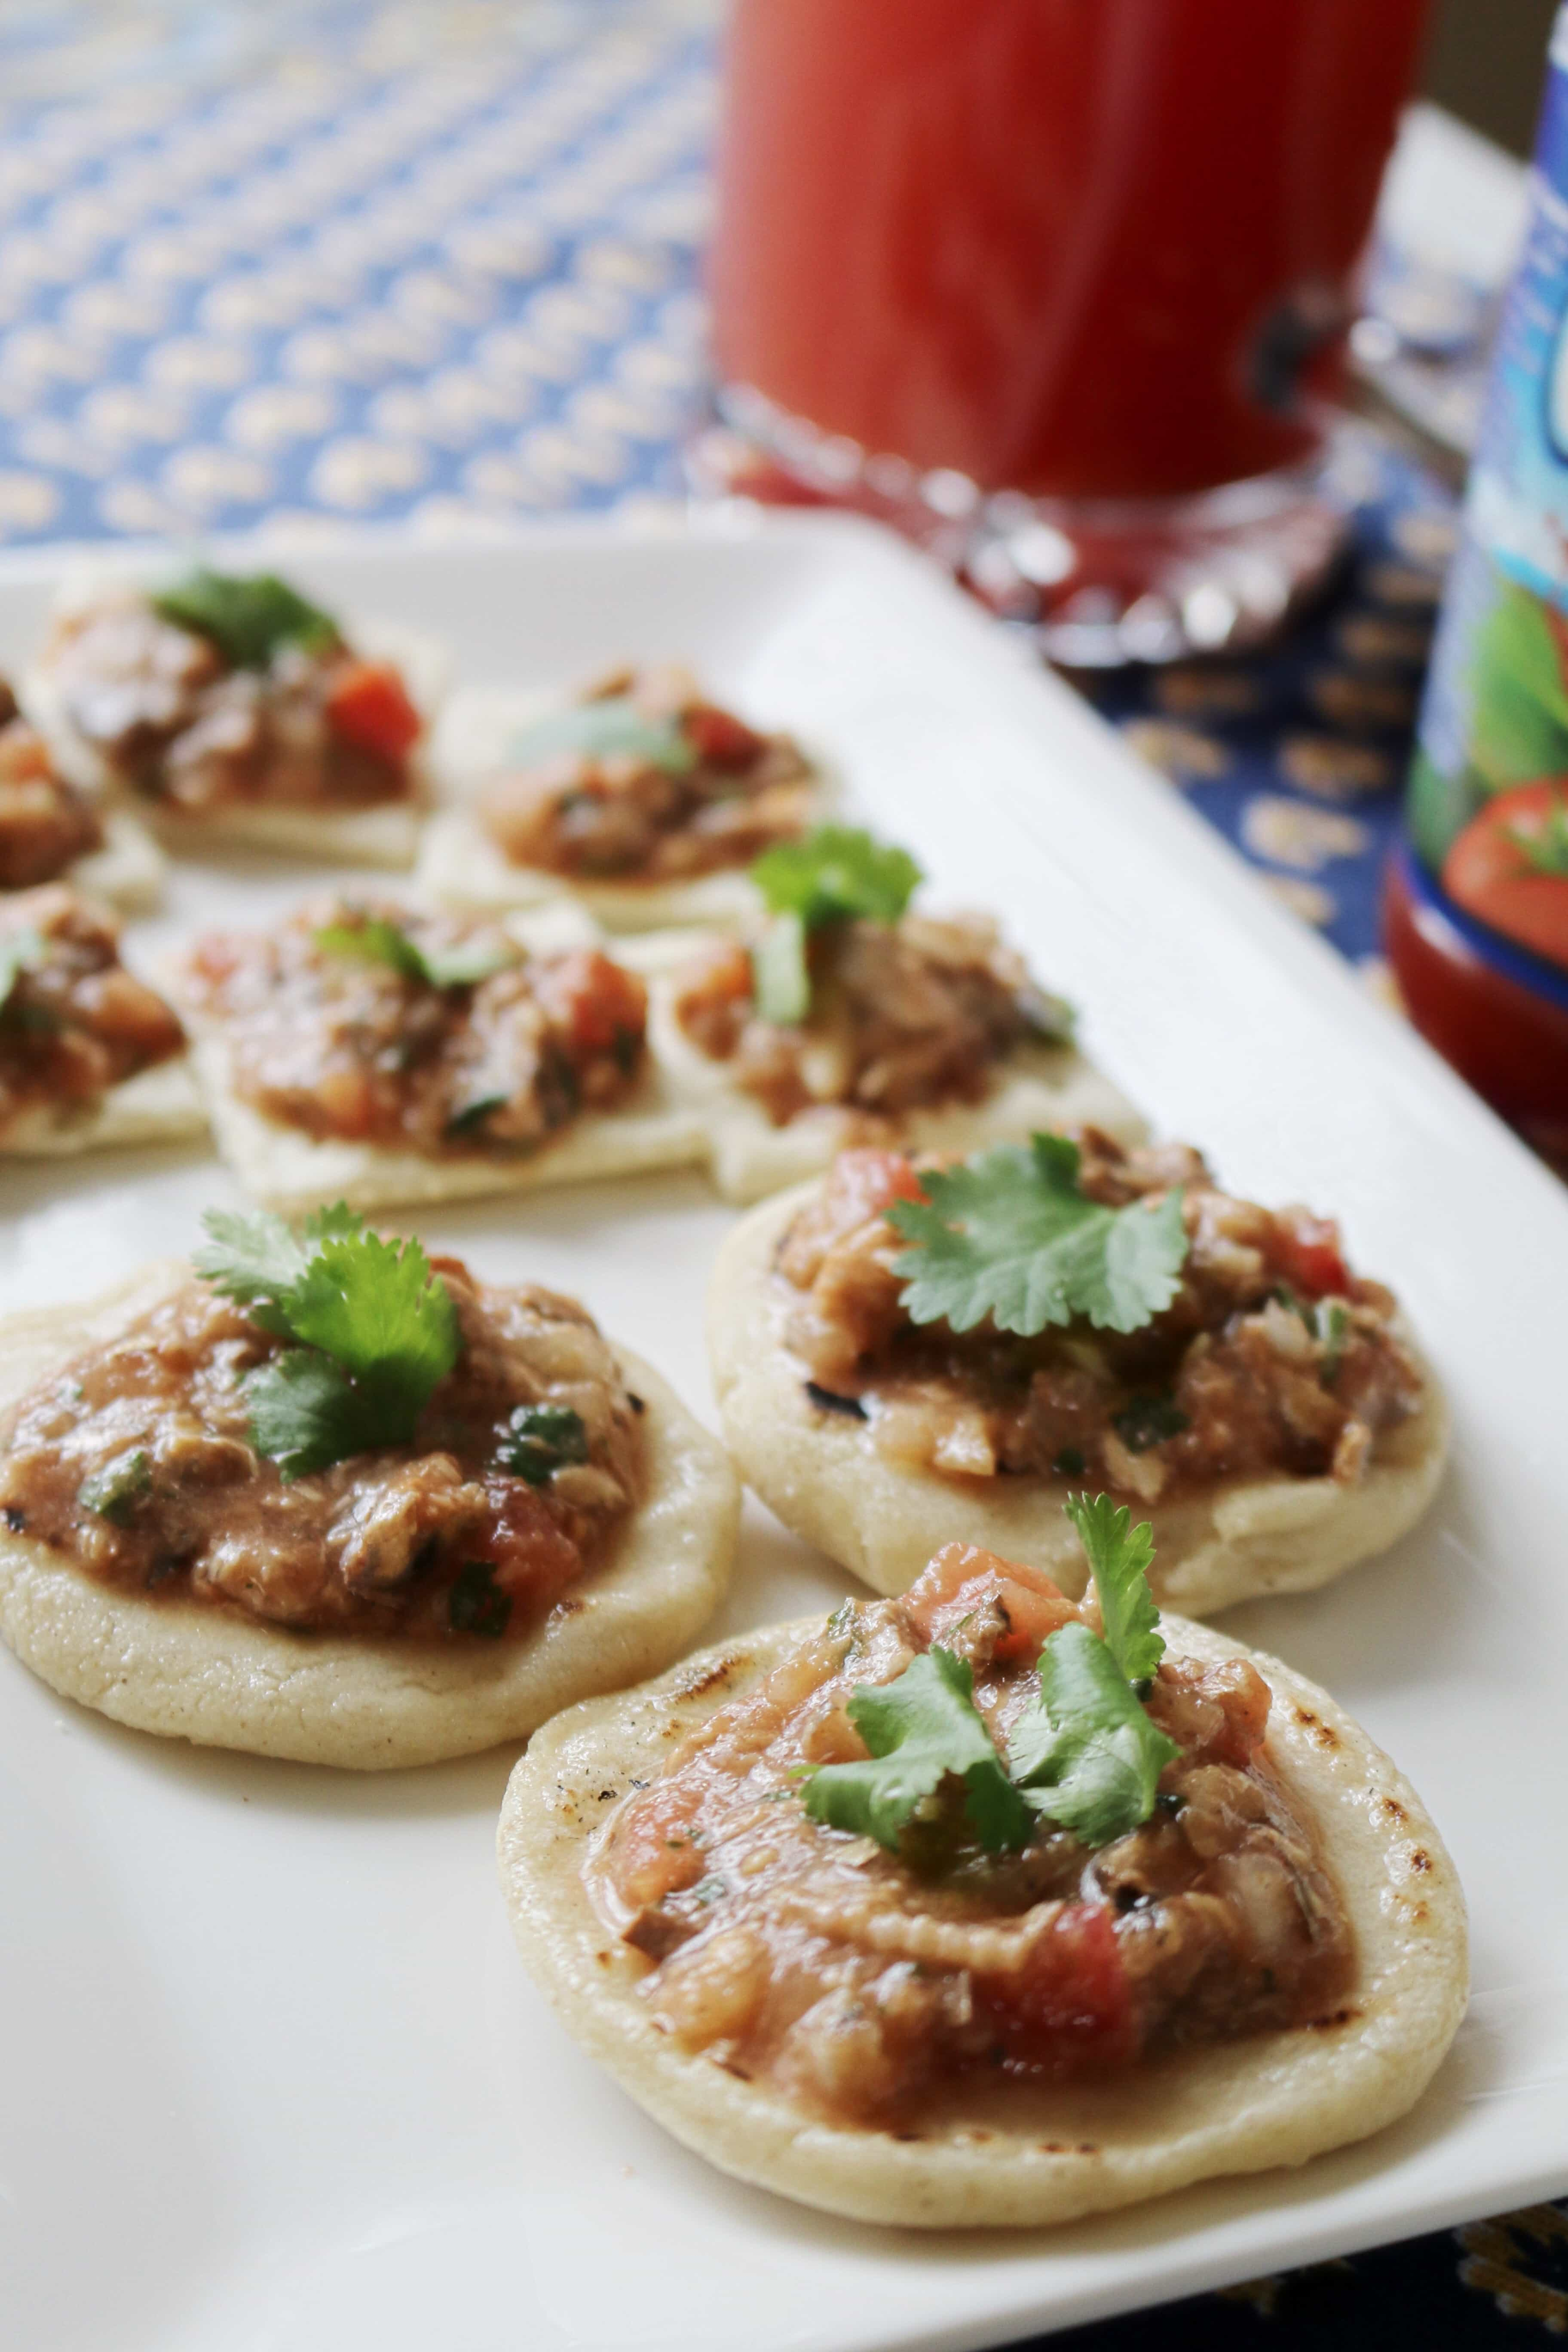 Boards-of-sardines-sardines-in-cans-sardines-in-tomato-sauce-recipe-lent